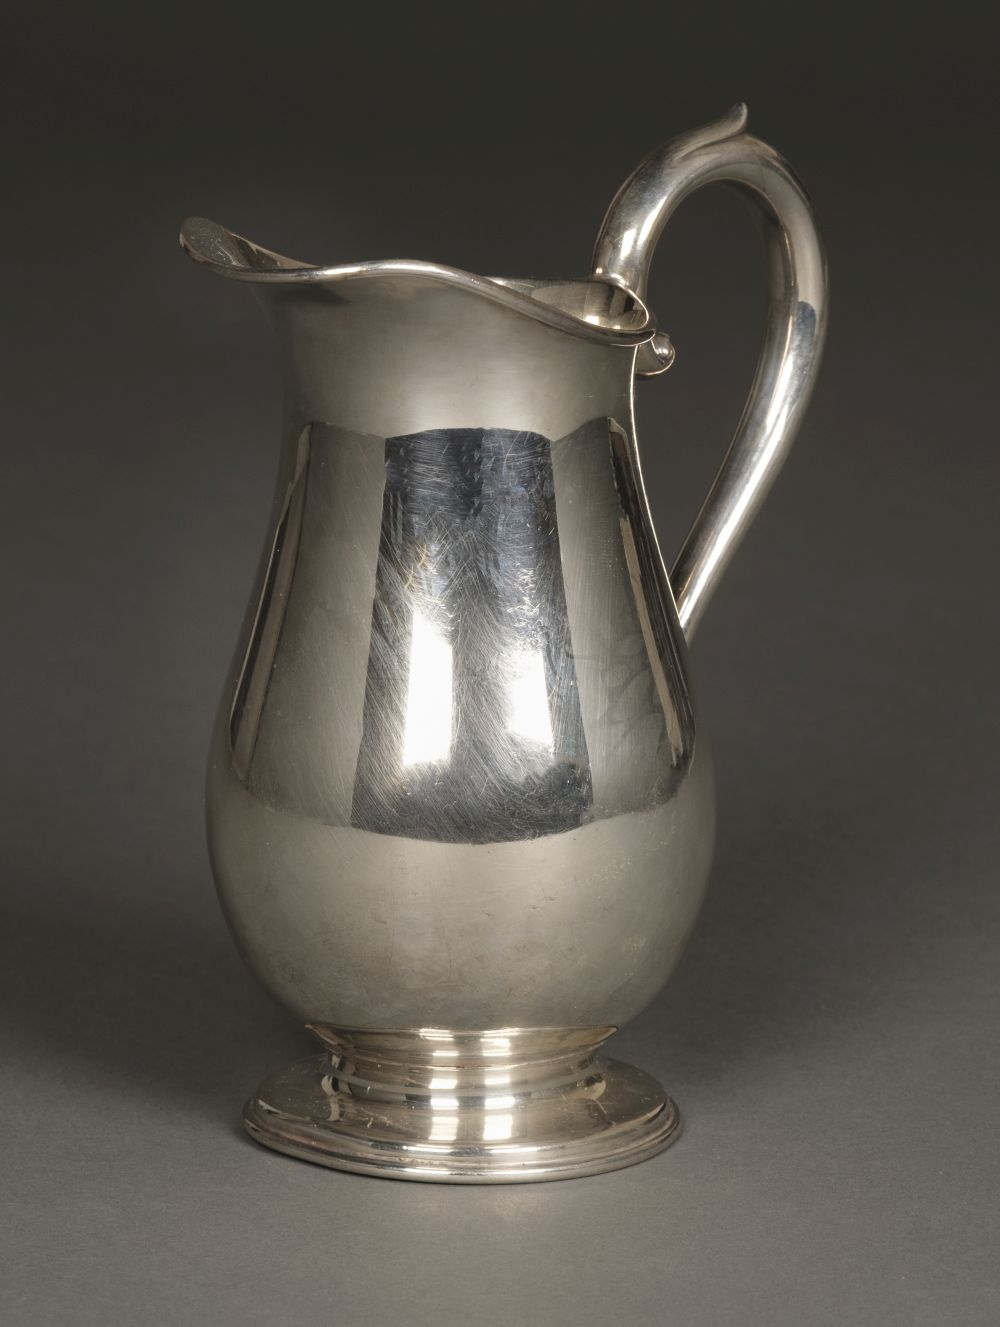 * Jug. Edwardian silver baluster jug by Cooper Brothers & Sons, Sheffield 1924